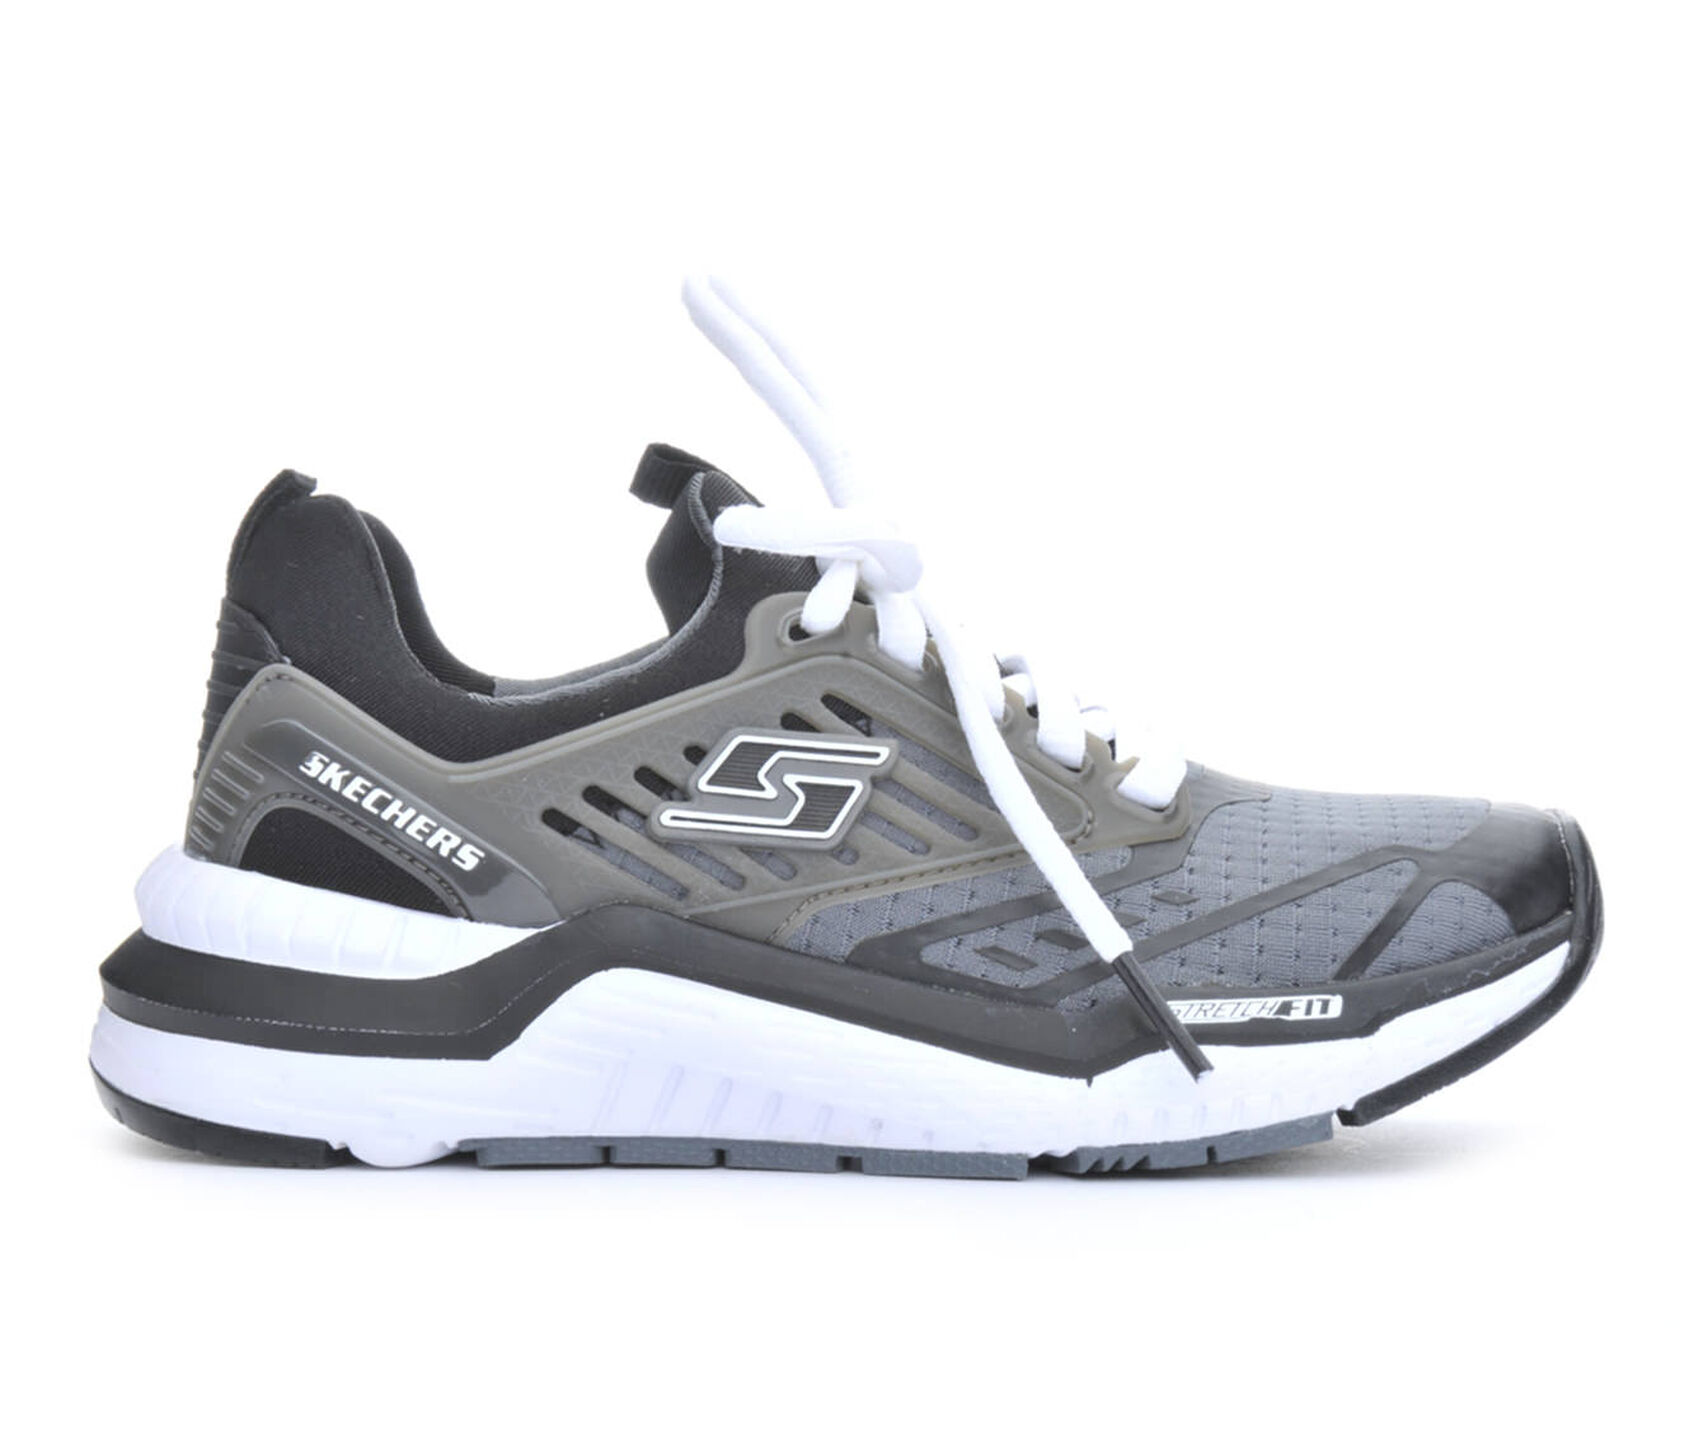 skechers shoes for boys. images skechers shoes for boys